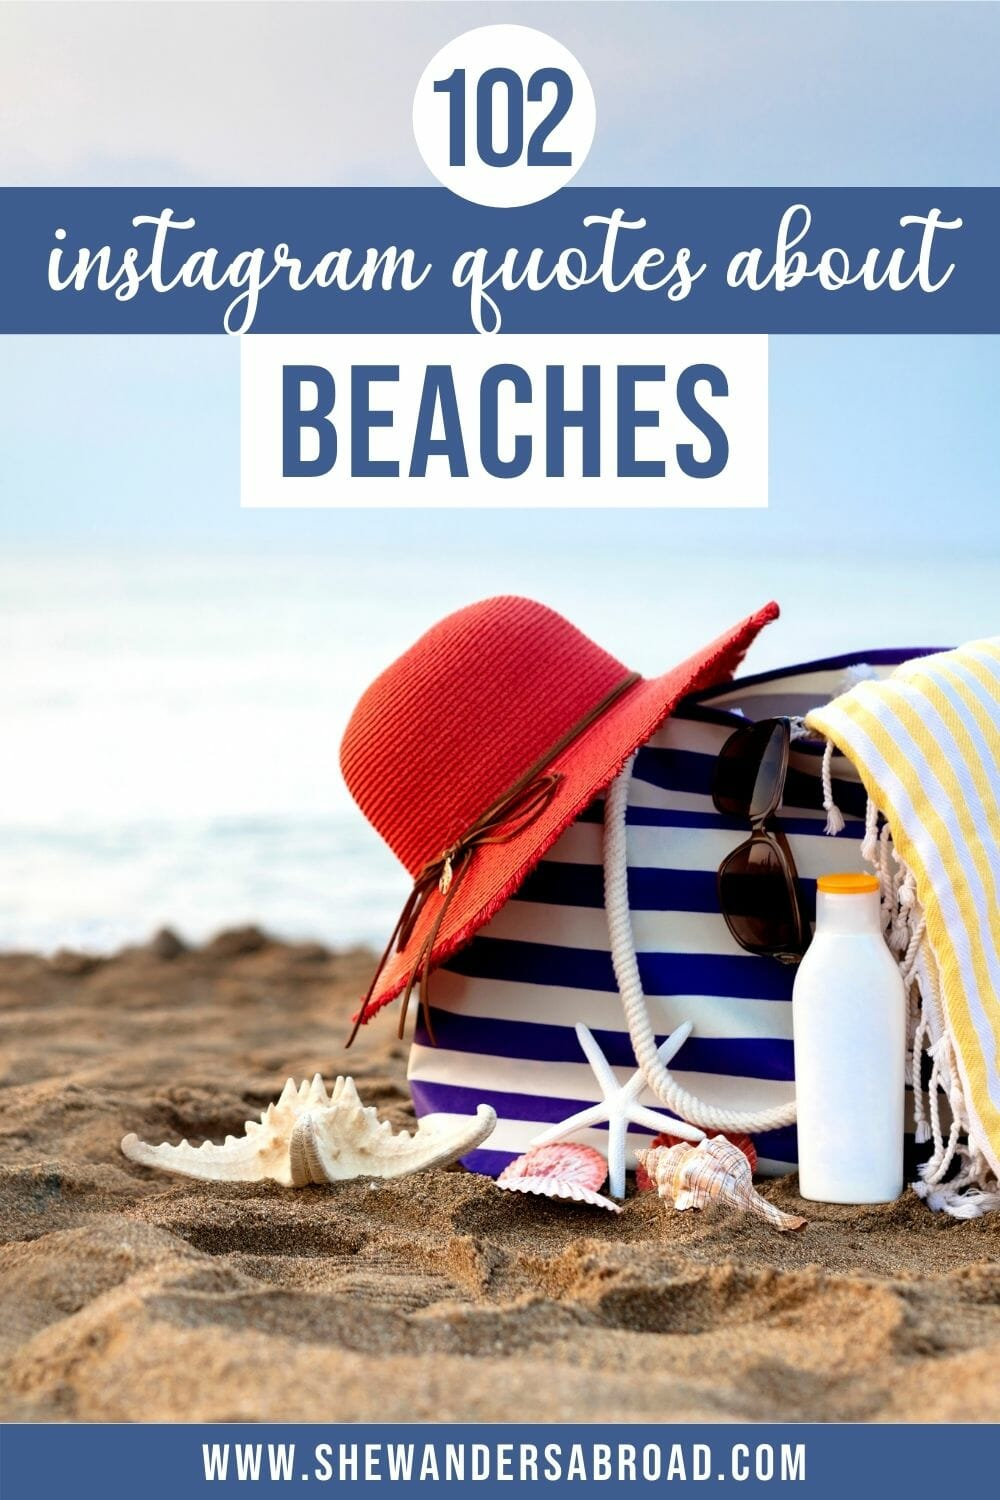 Amazing Beach Captions for Instagram (Quotes, Puns and More!)